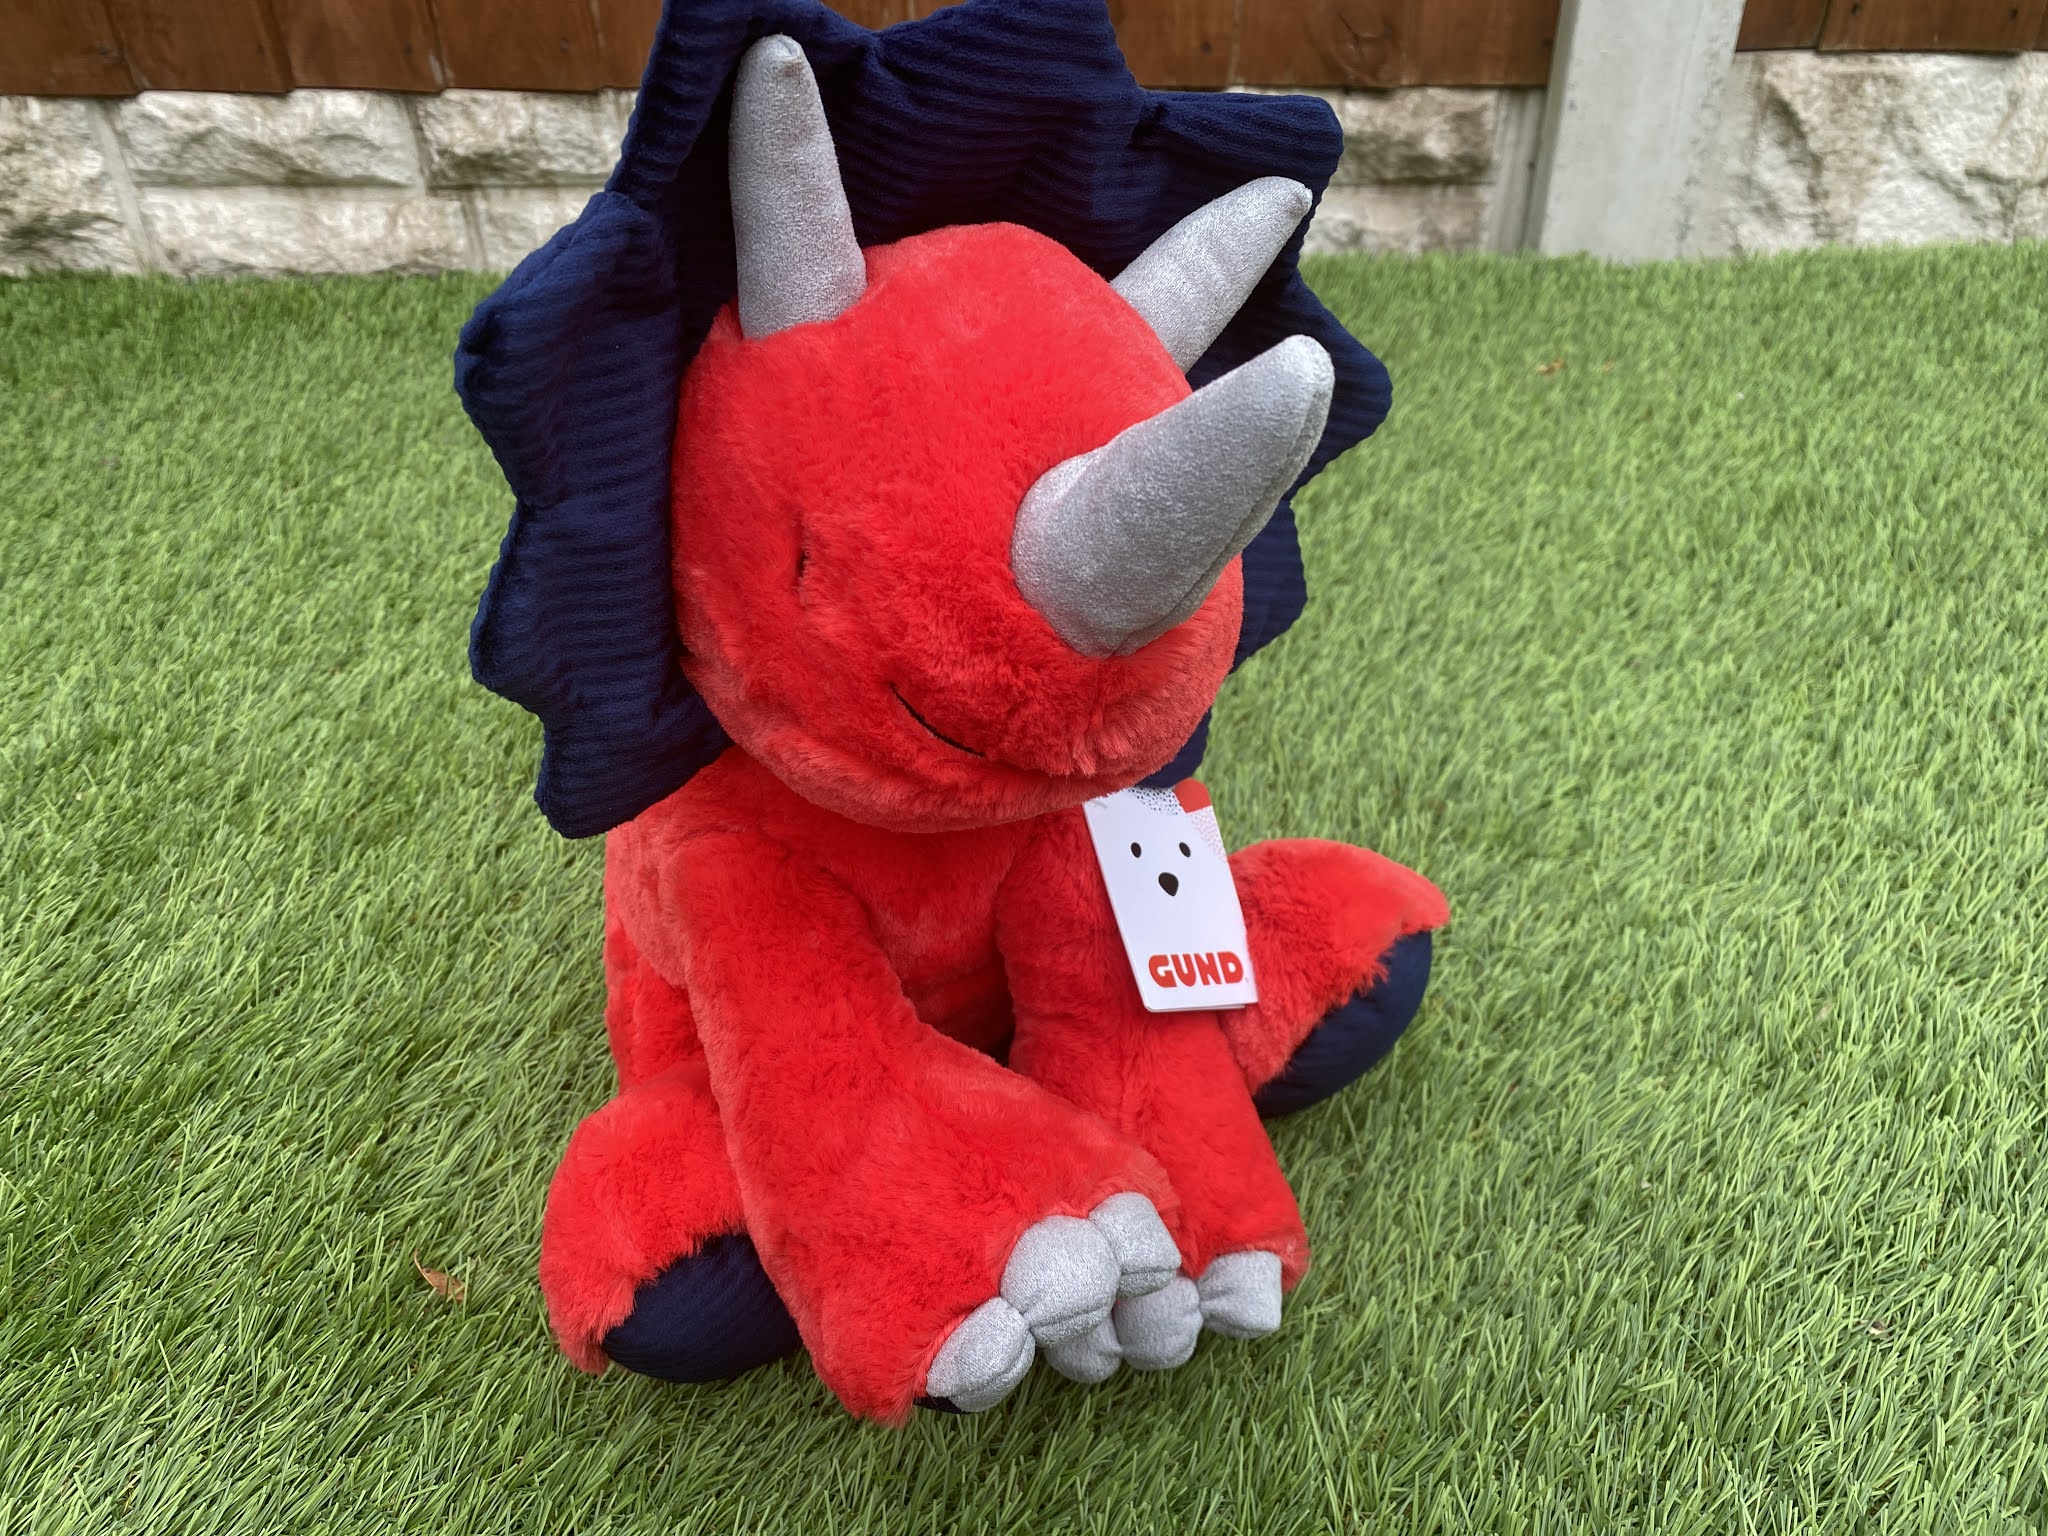 Carson the Triceratops Soft Toy from GUND